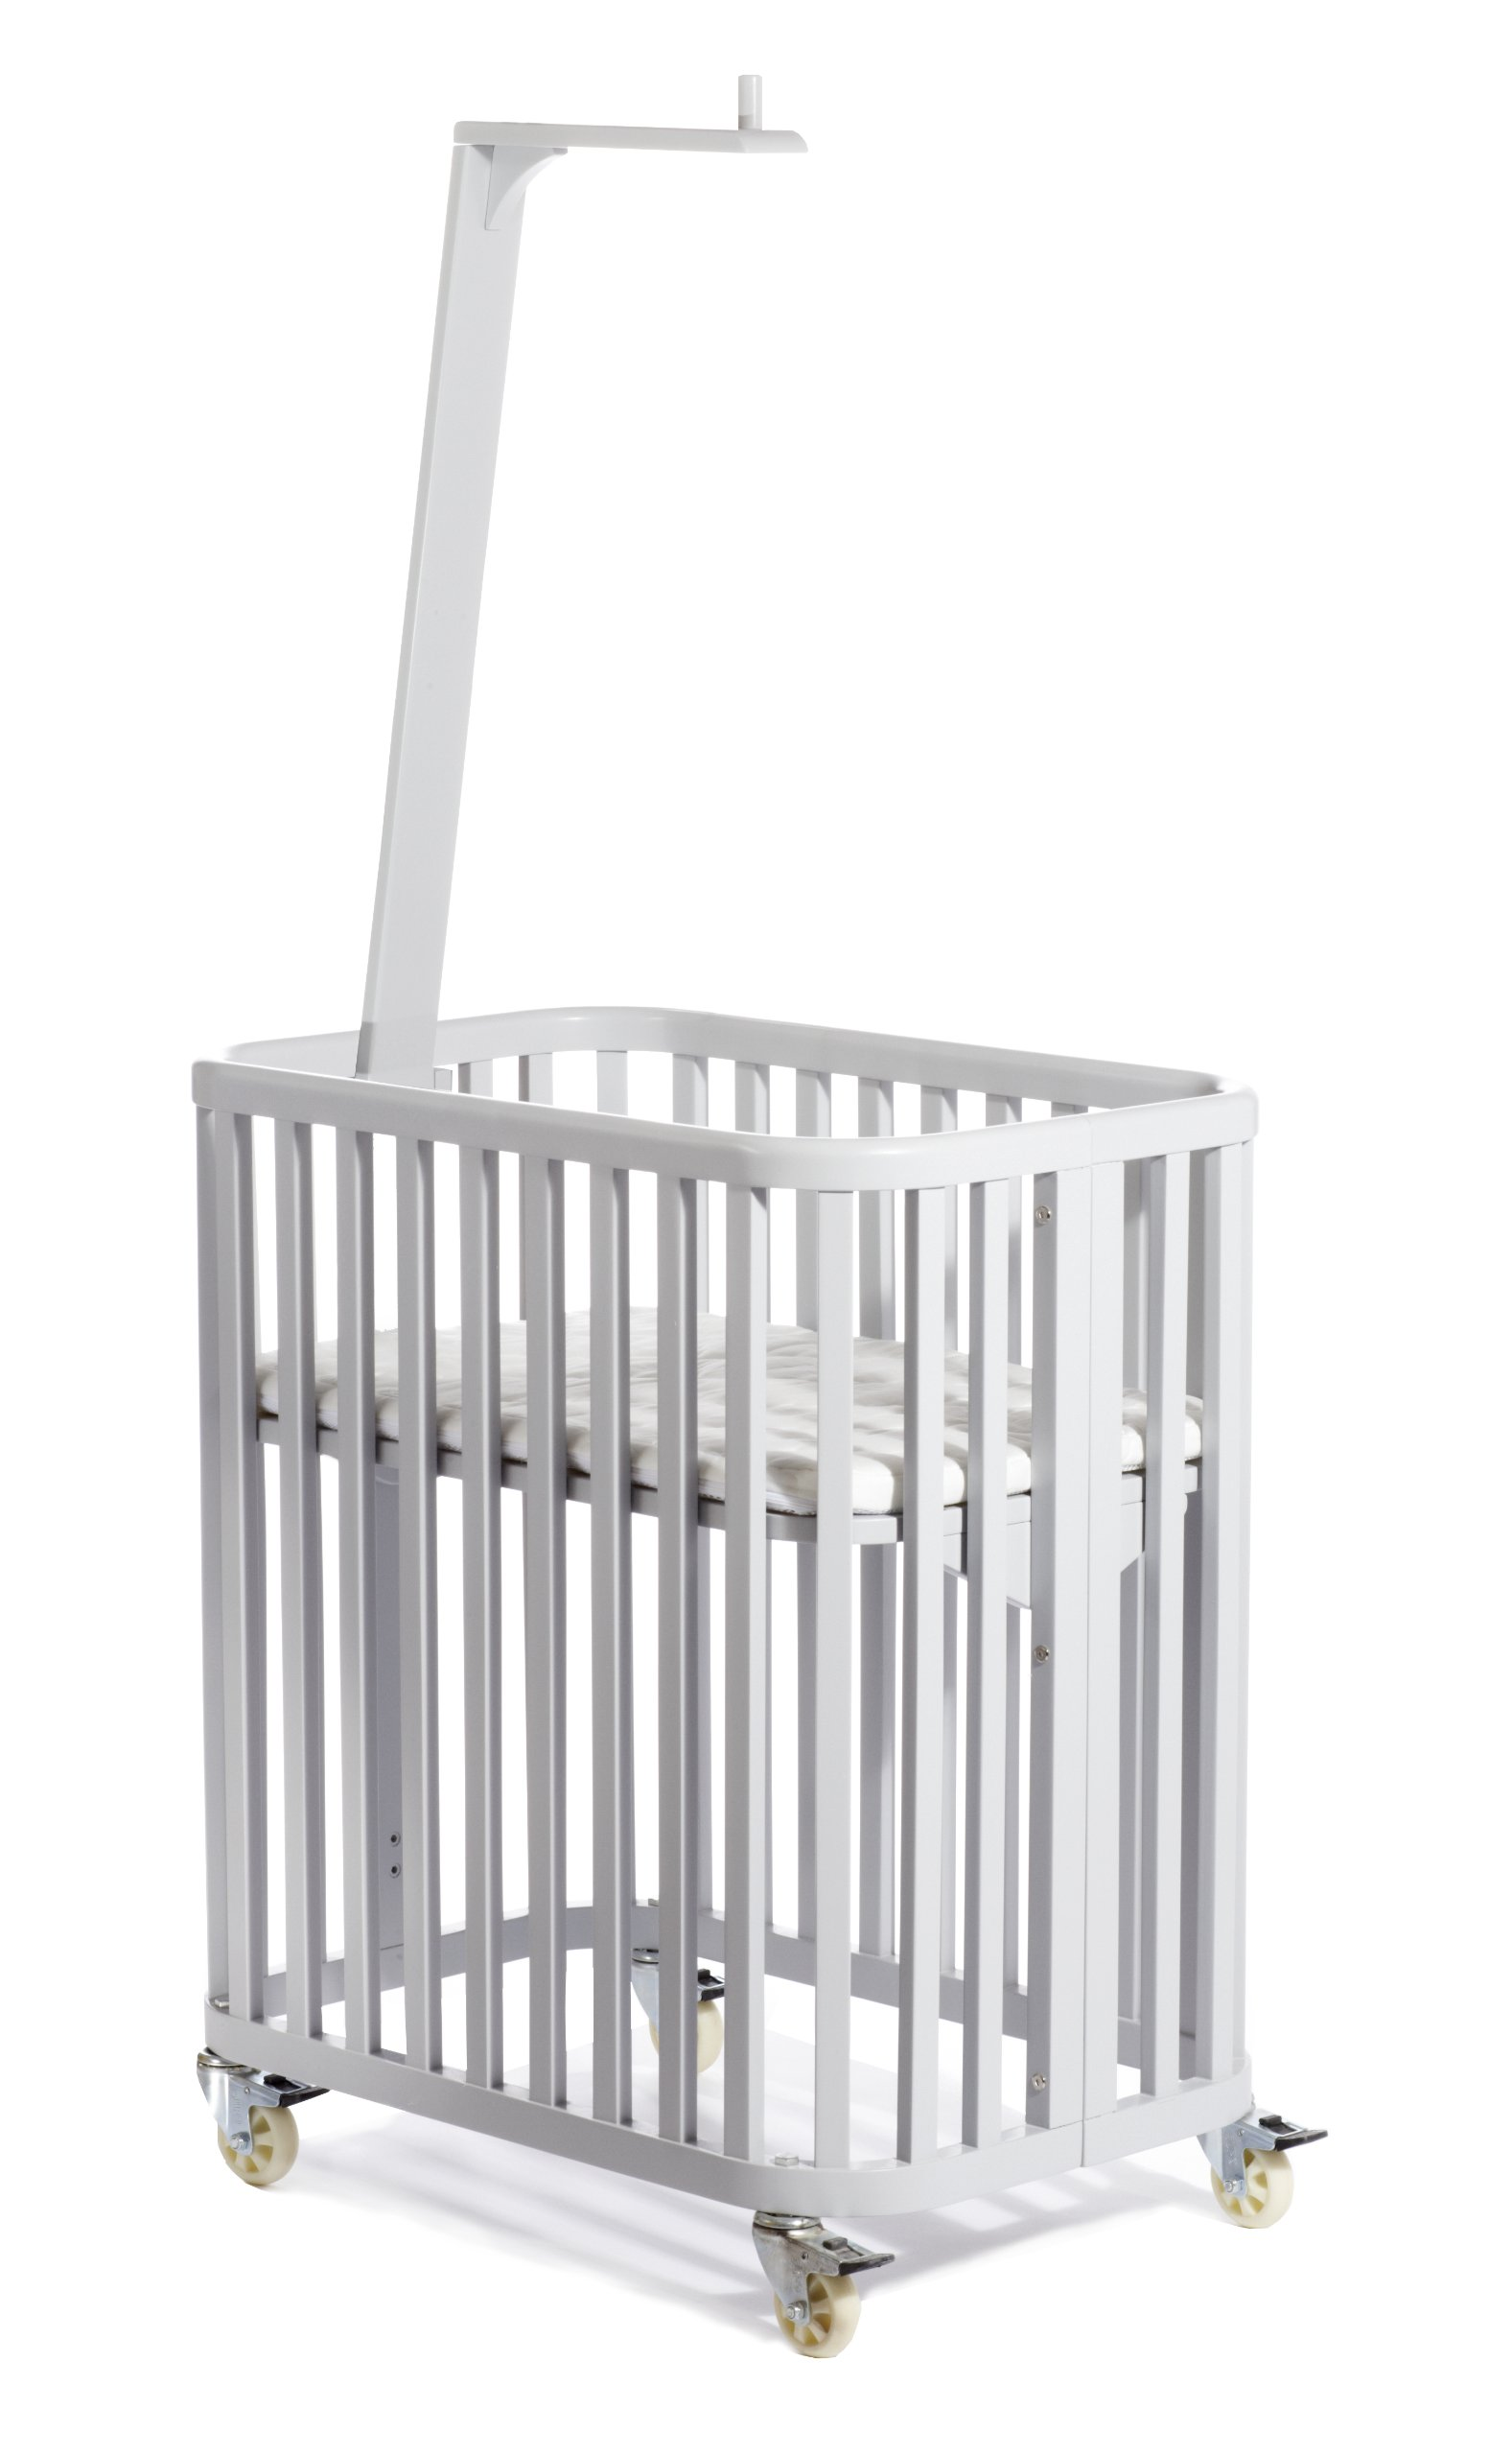 Argington Bam Bam Canopy Support, Grey